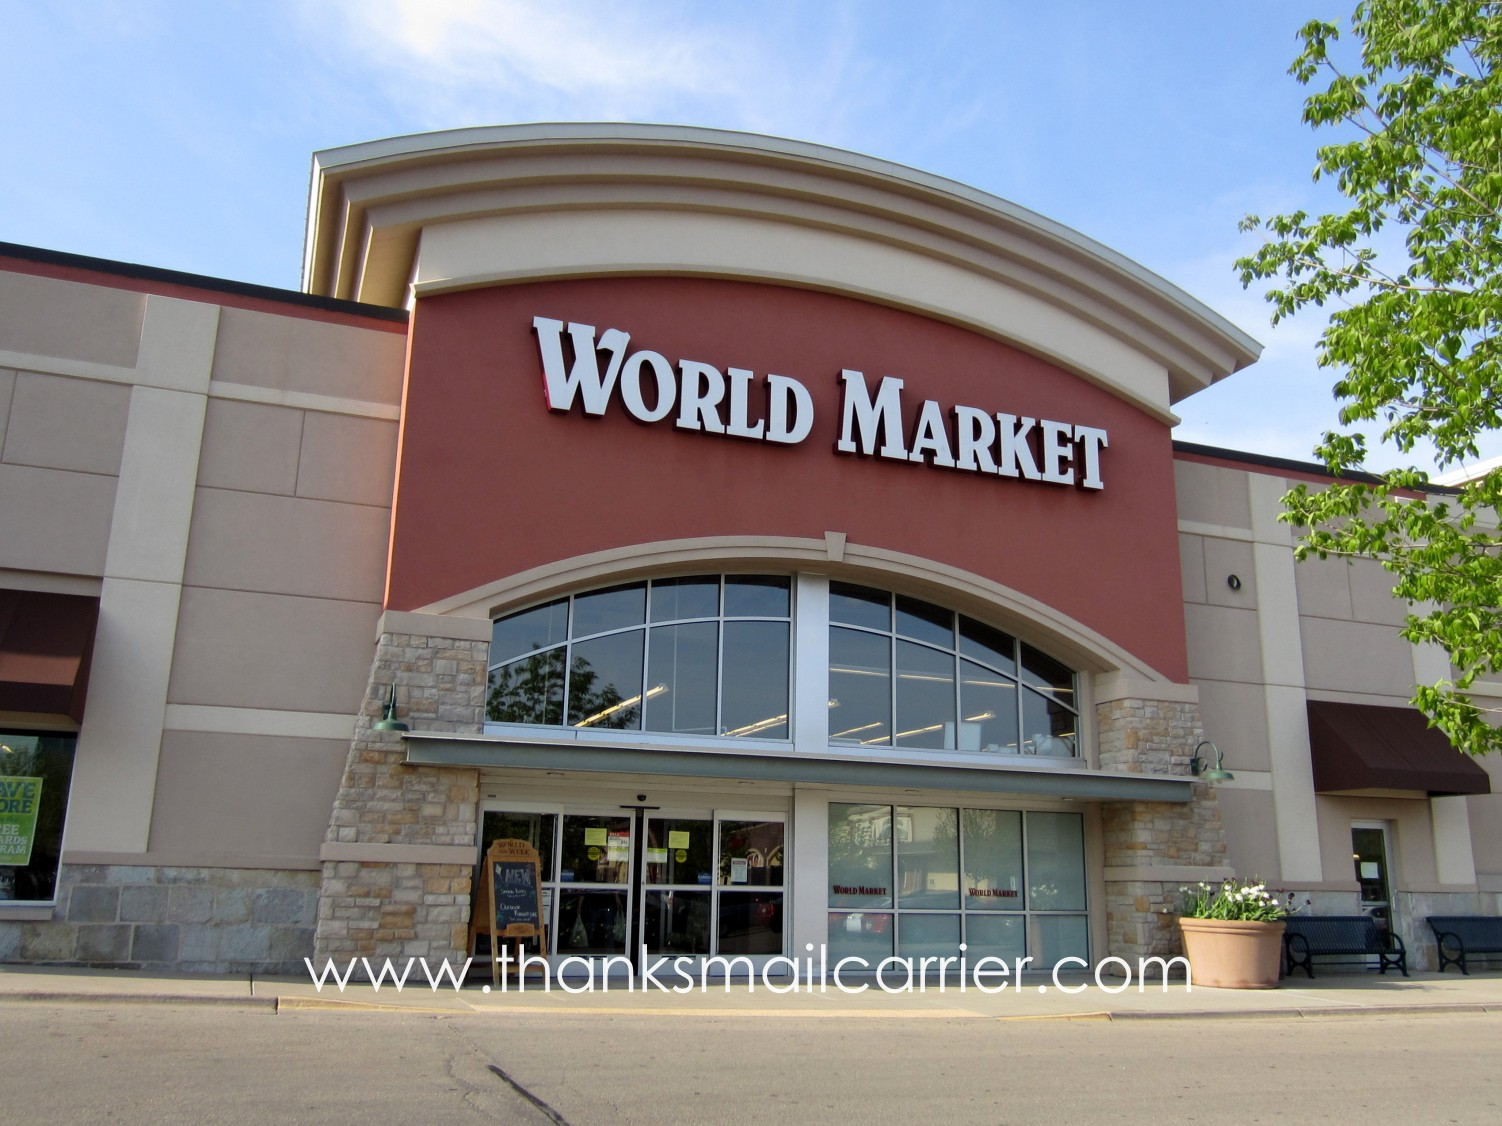 Enter for your chance to win a $ Cost Plus World Market store gift card (12 Winners)! In addition, enter for your chance to win a $ Cost Plus World Market store gift card (12 Winners), or a $ Cost Plus World Market store gift card (12 Winners)!